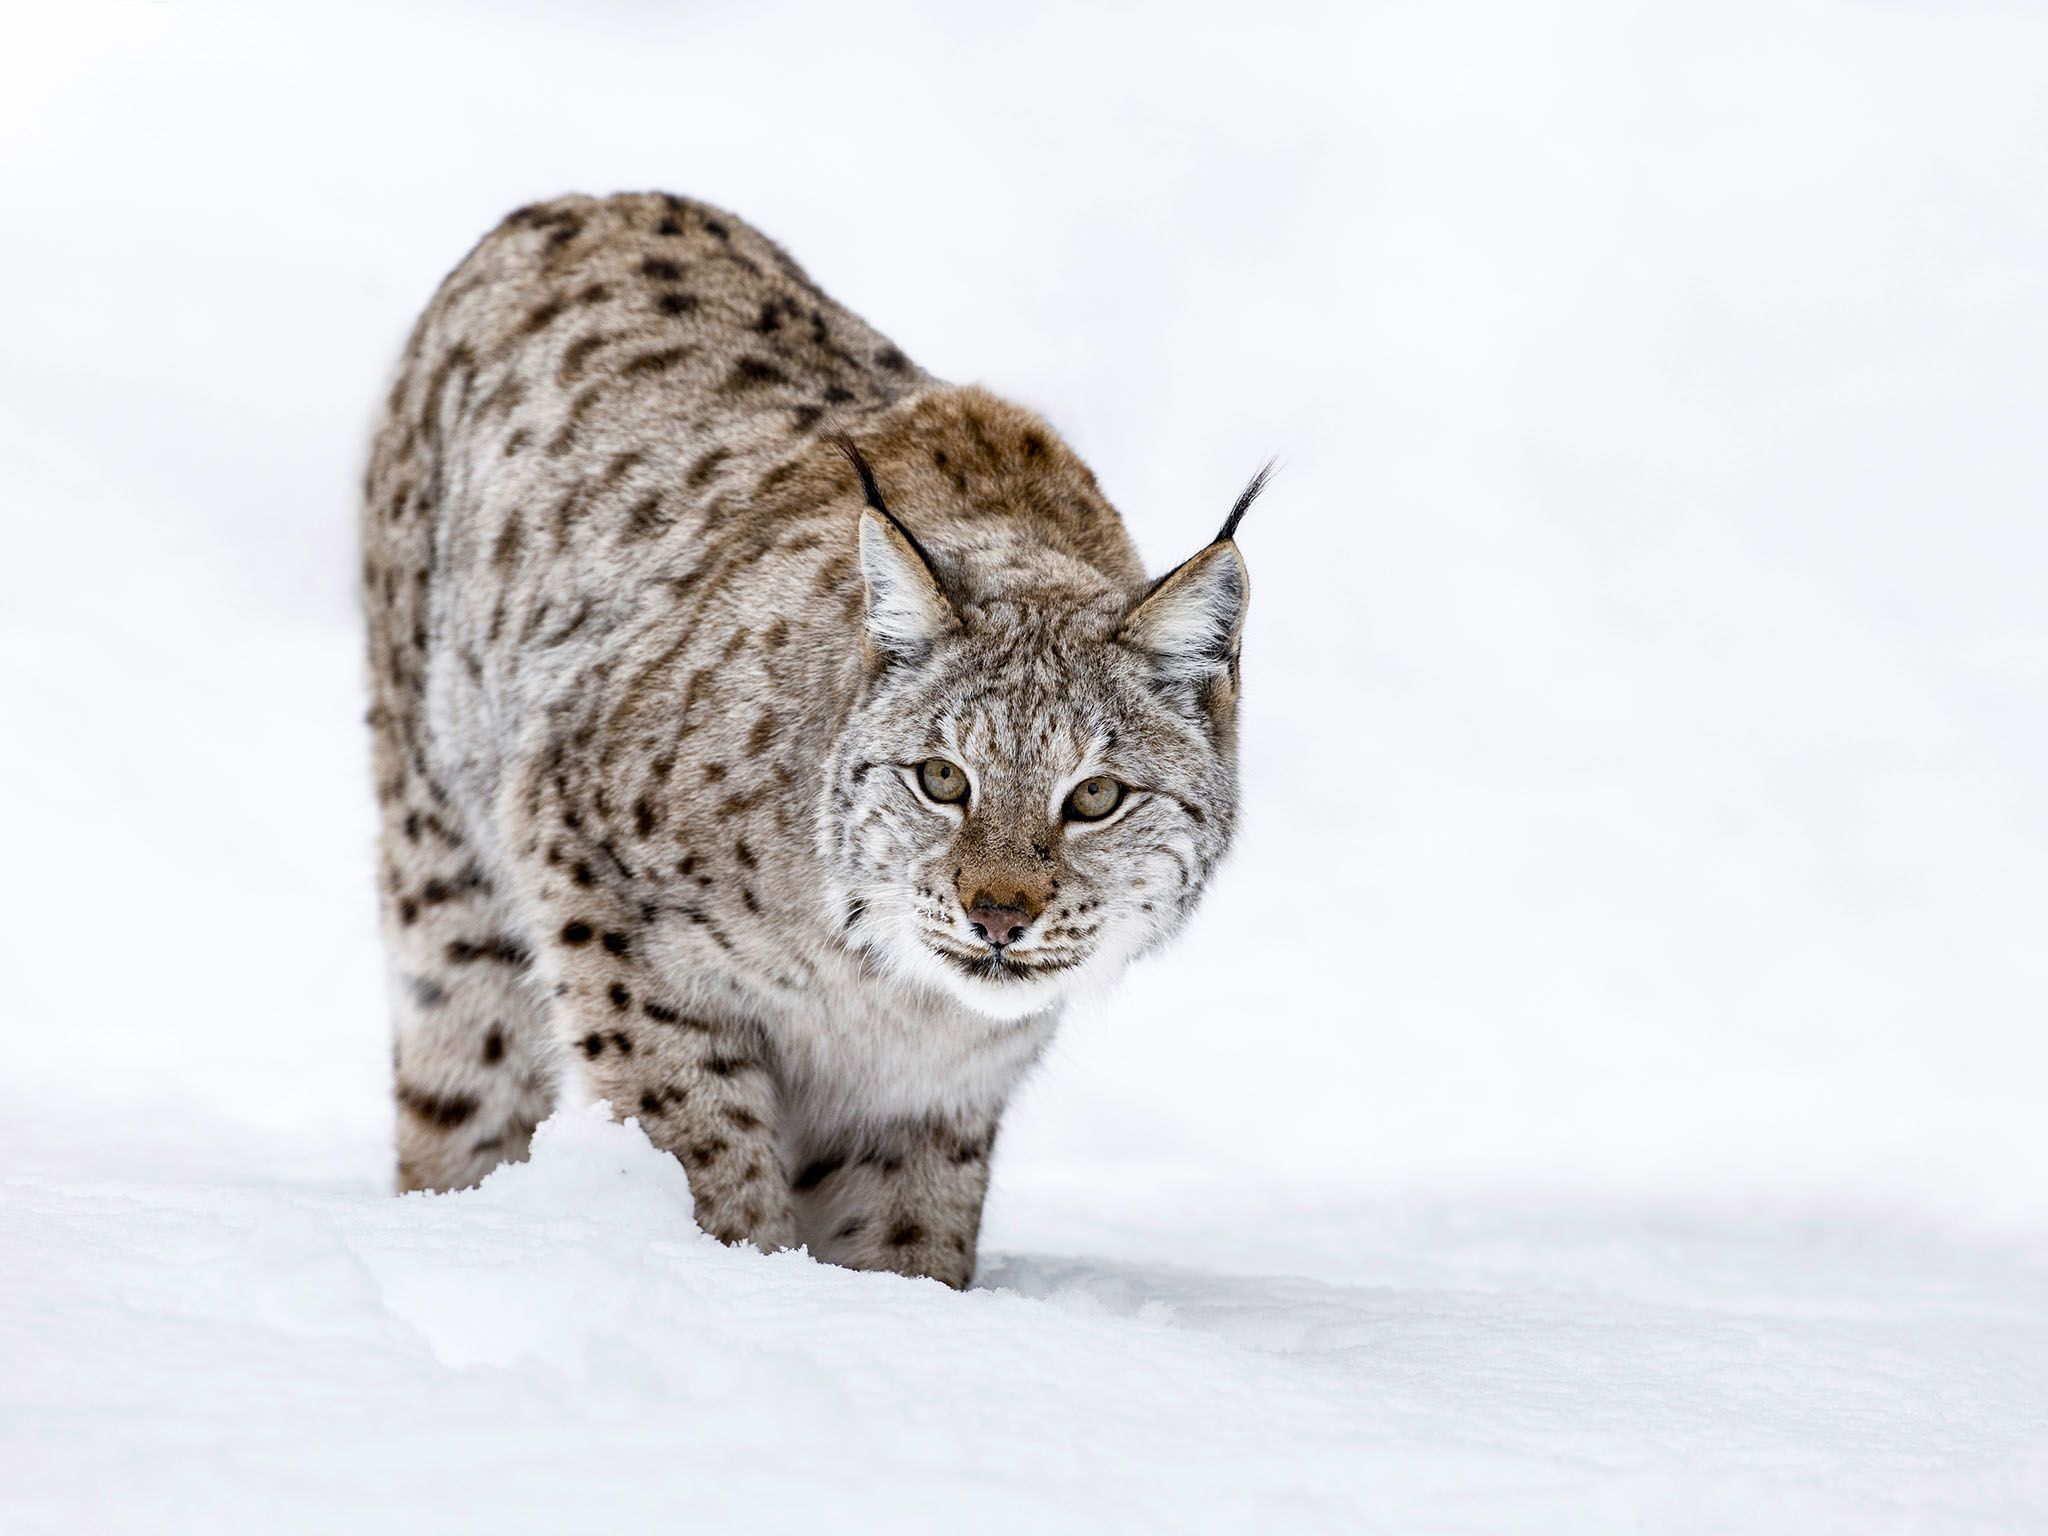 A Lynx in winter snow. This image is from Winter Wonderland. [Foto del día - diciembre 2015]